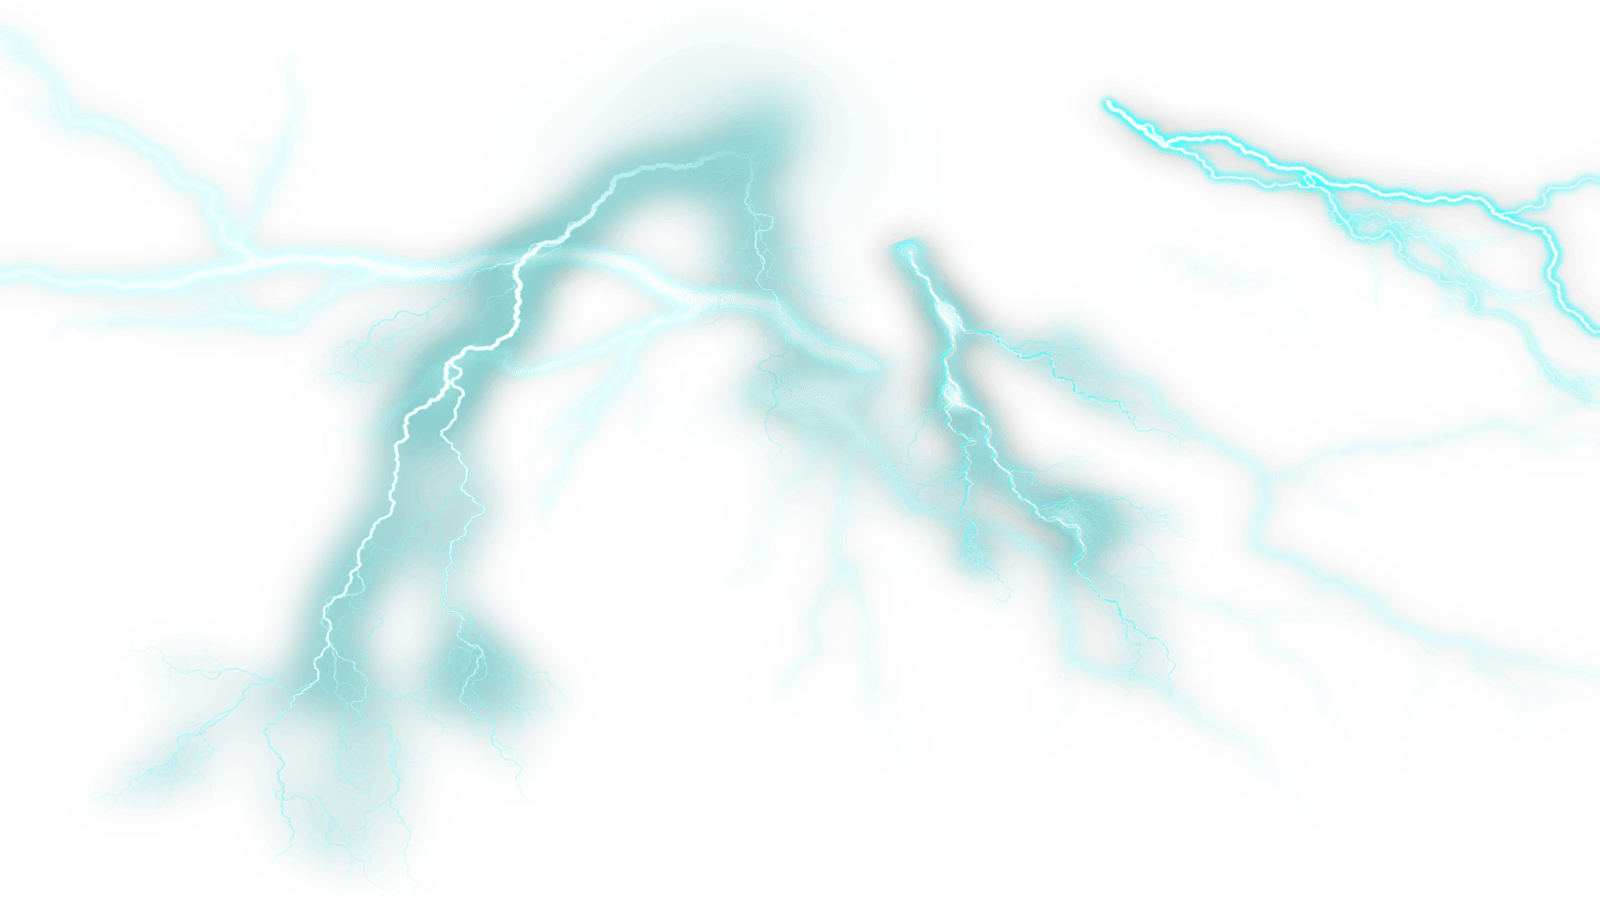 Download - Thunder, Transparent background PNG HD thumbnail